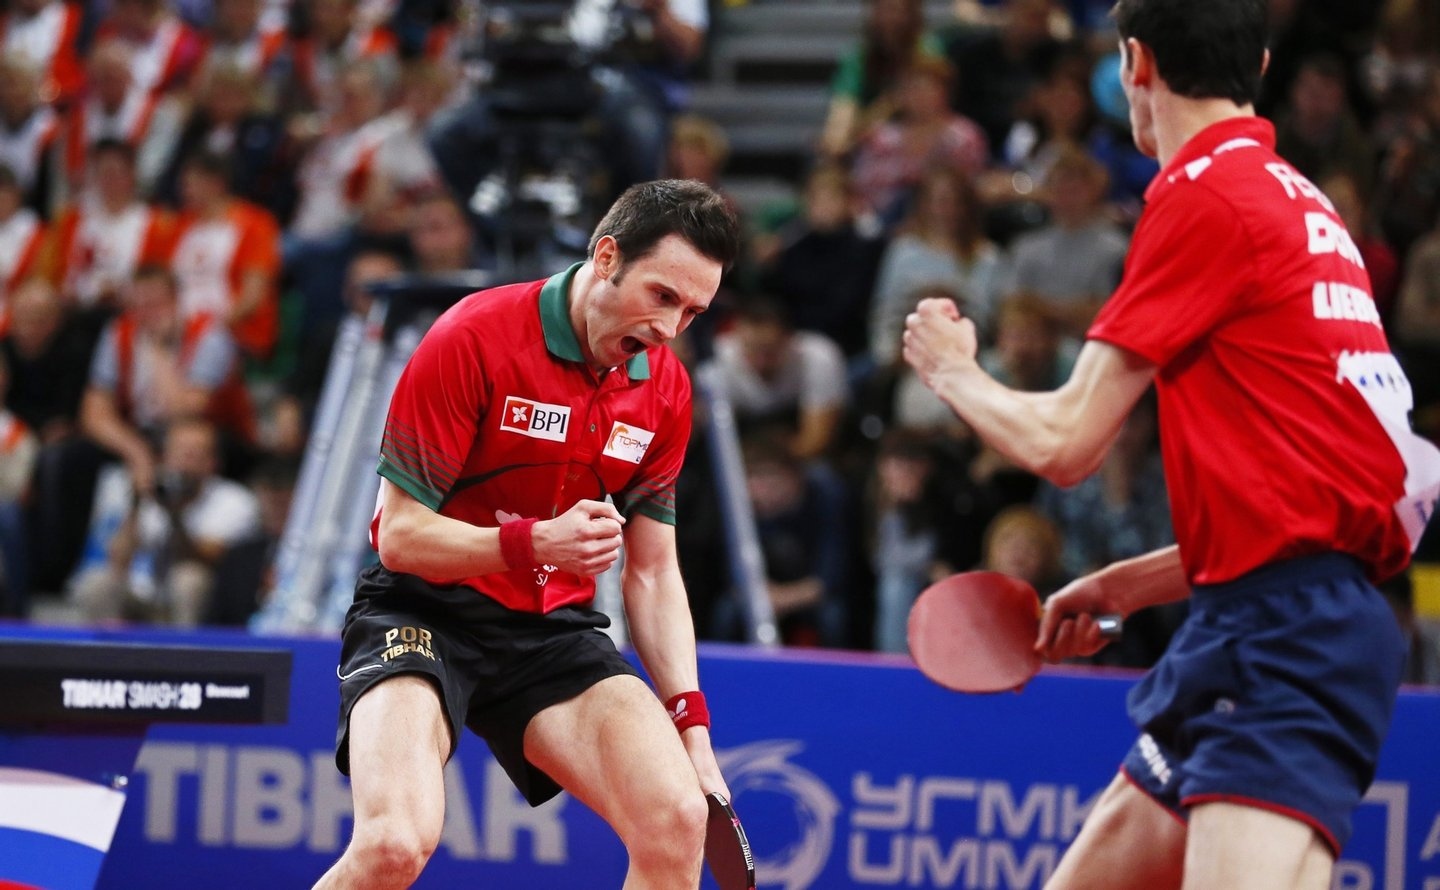 epa04962919 Stefan Fegerl (R) of Austria and Joao Monteiro (L) of Portugal celebrate a point against Robert Gardos and Daniel Habesohn of Austria during their men's doubles final match of the Table Tennis European Championships in Ekaterinburg, Russia, 04 October 2015. EPA/SERGEI ILNITSKY